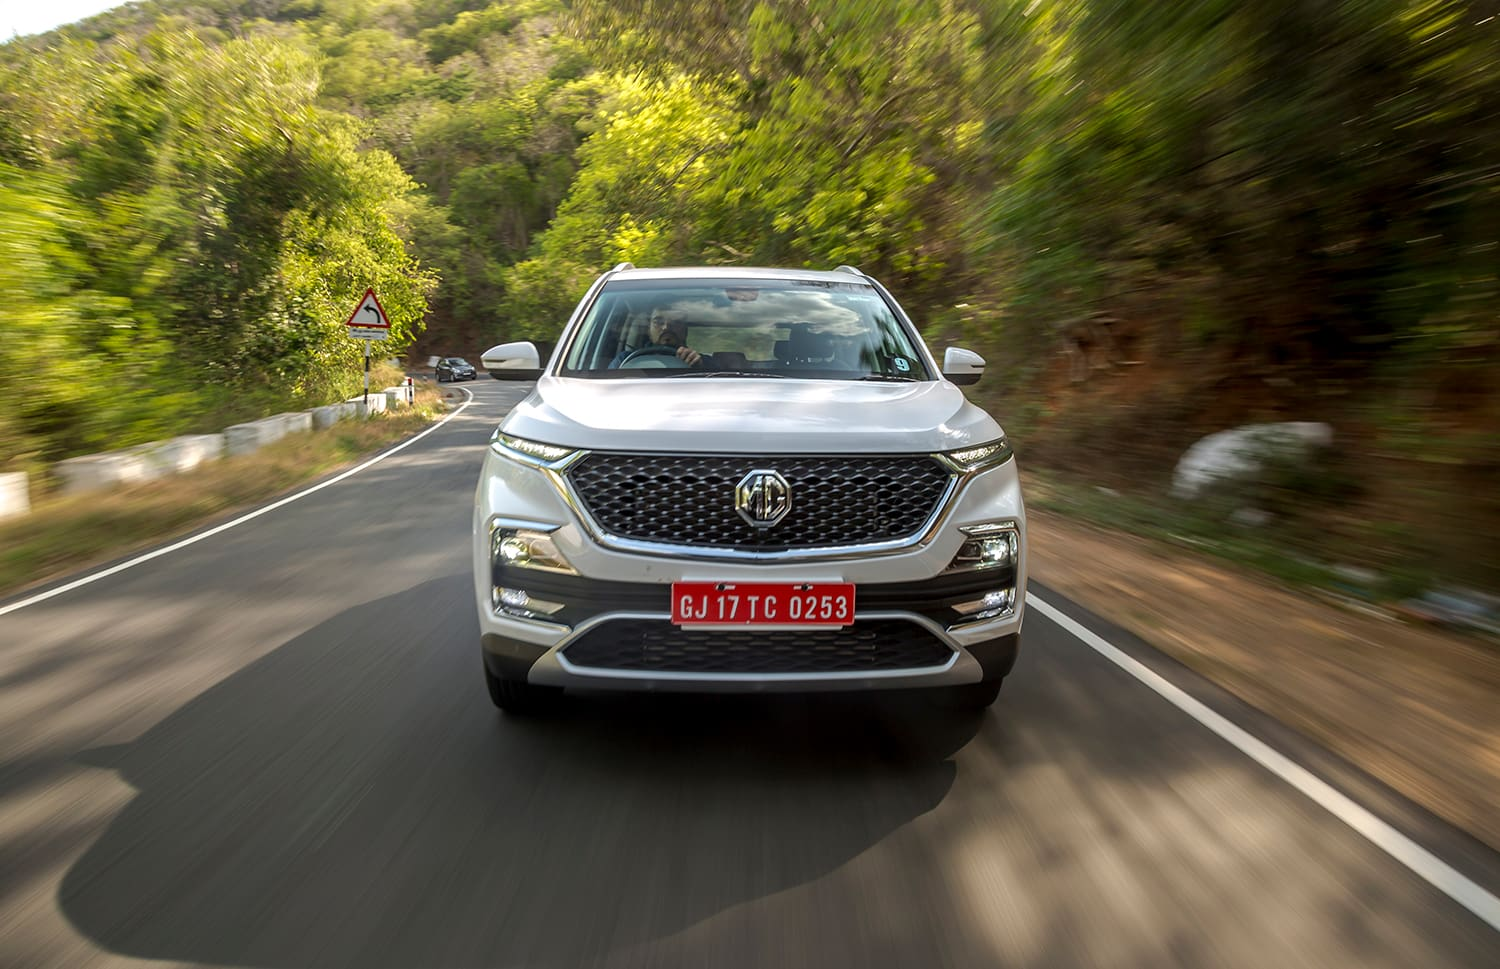 Mg Hector Will Get Bs6 Diesel Engine Update Likely To Be Priced